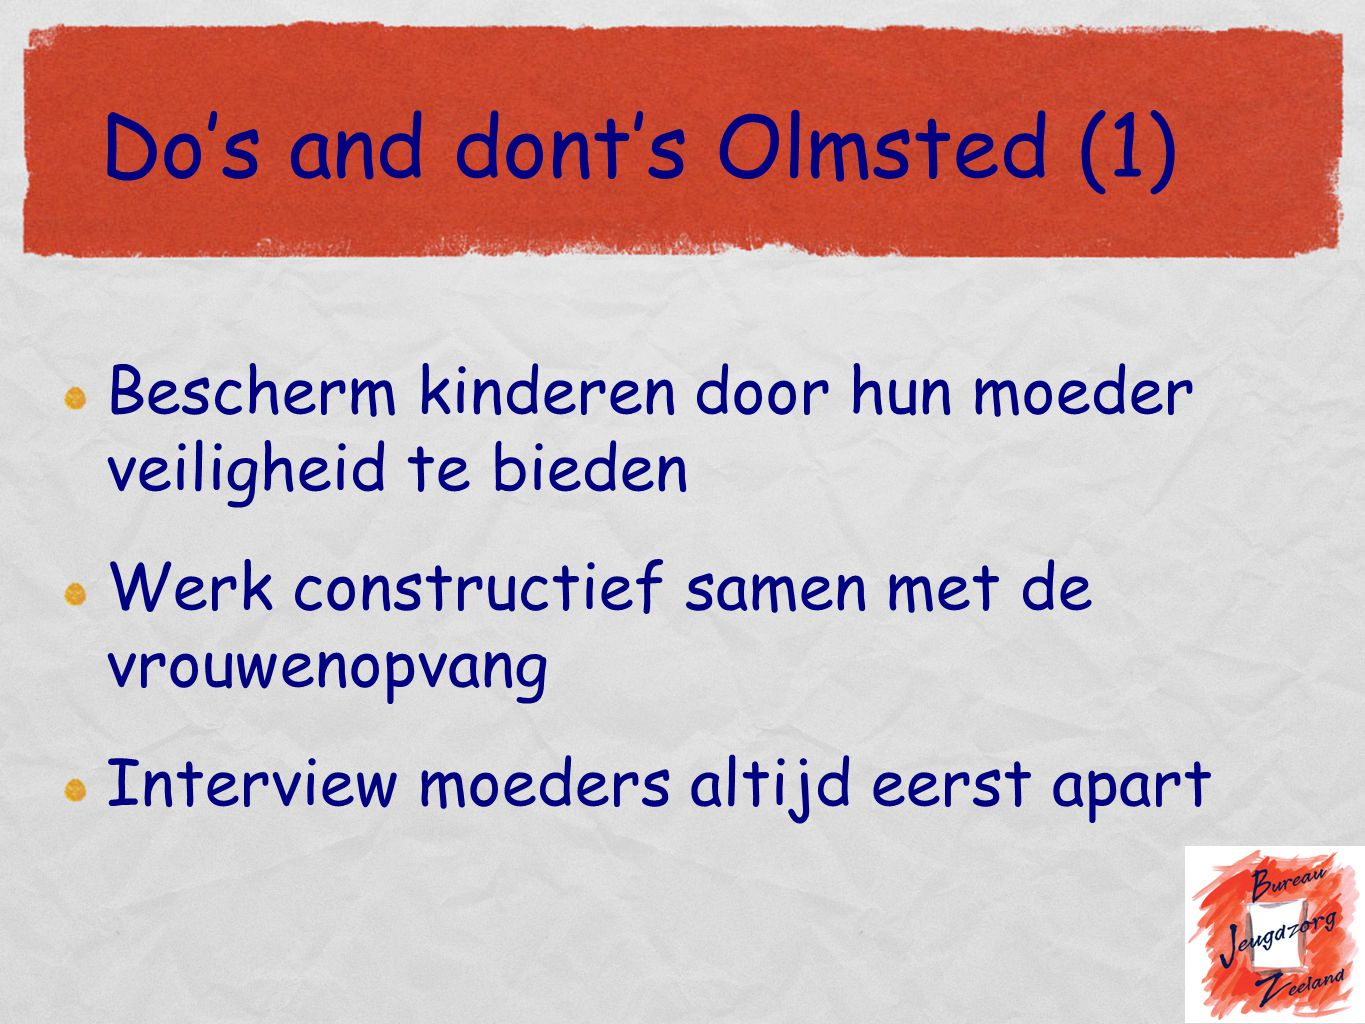 Do's and dont's Olmsted (1)